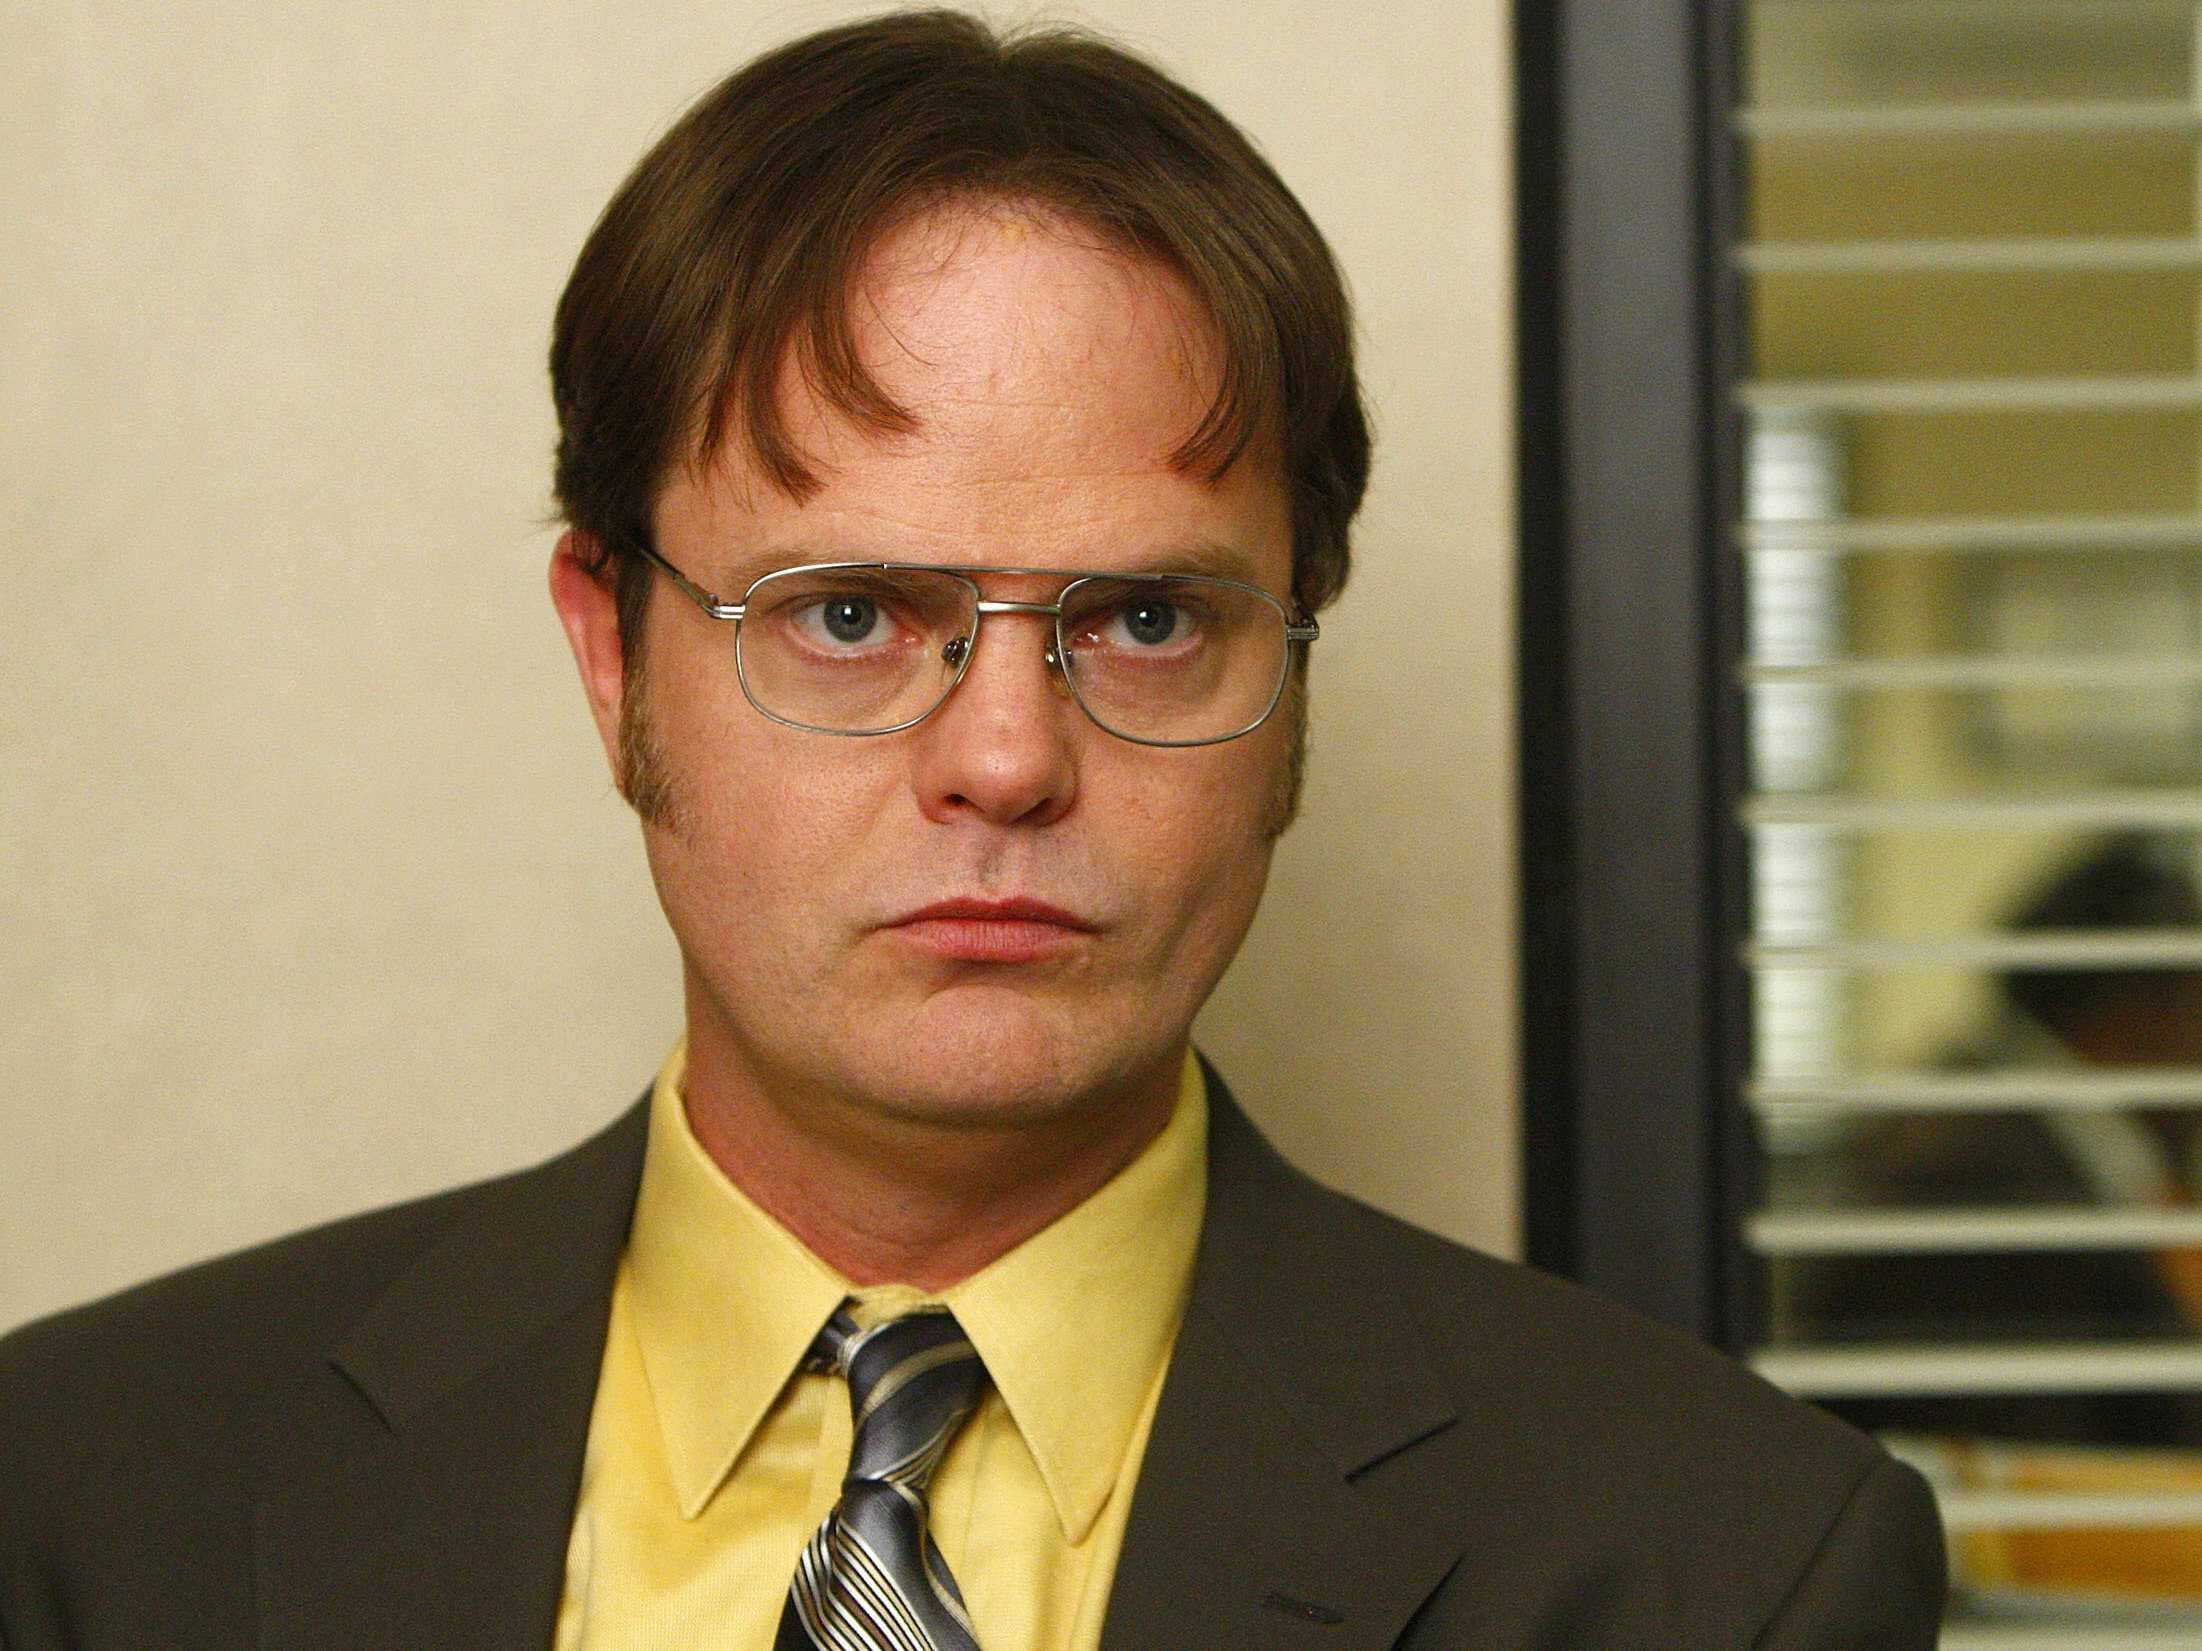 Star Trek: Discovery Casts Rainn Wilson as TOS Character The Office ...